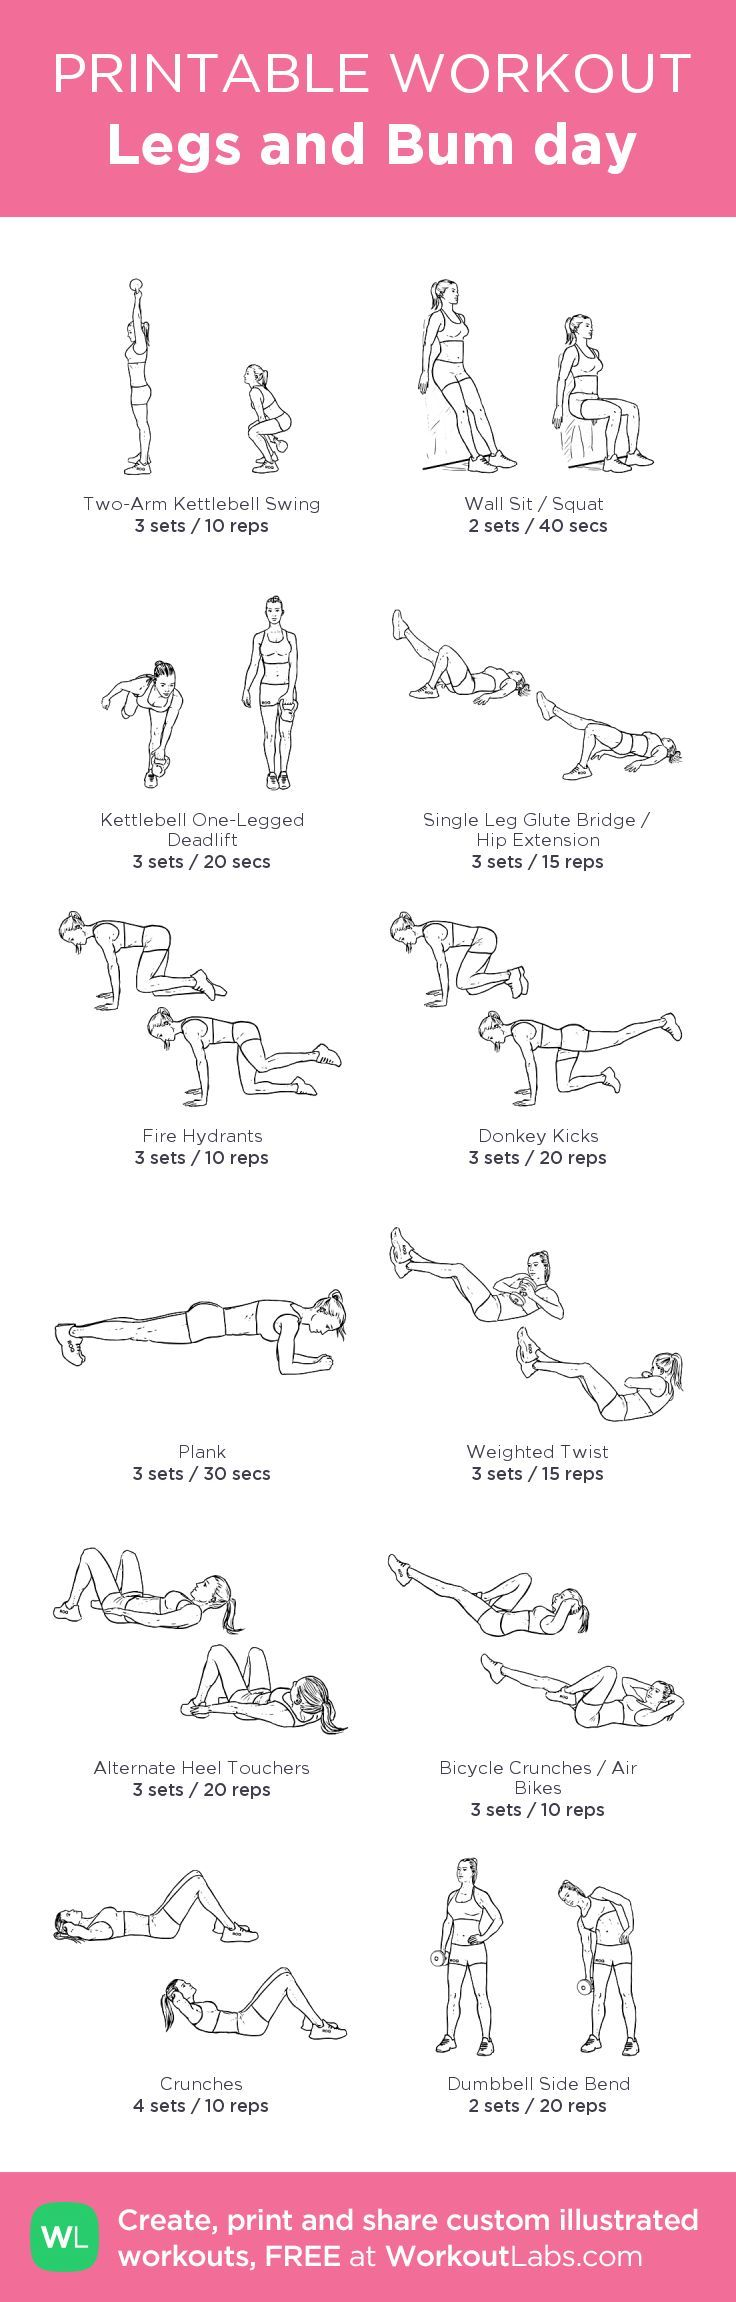 Legs and Bum day : my custom printable workout by @WorkoutLabs #workoutlabs…